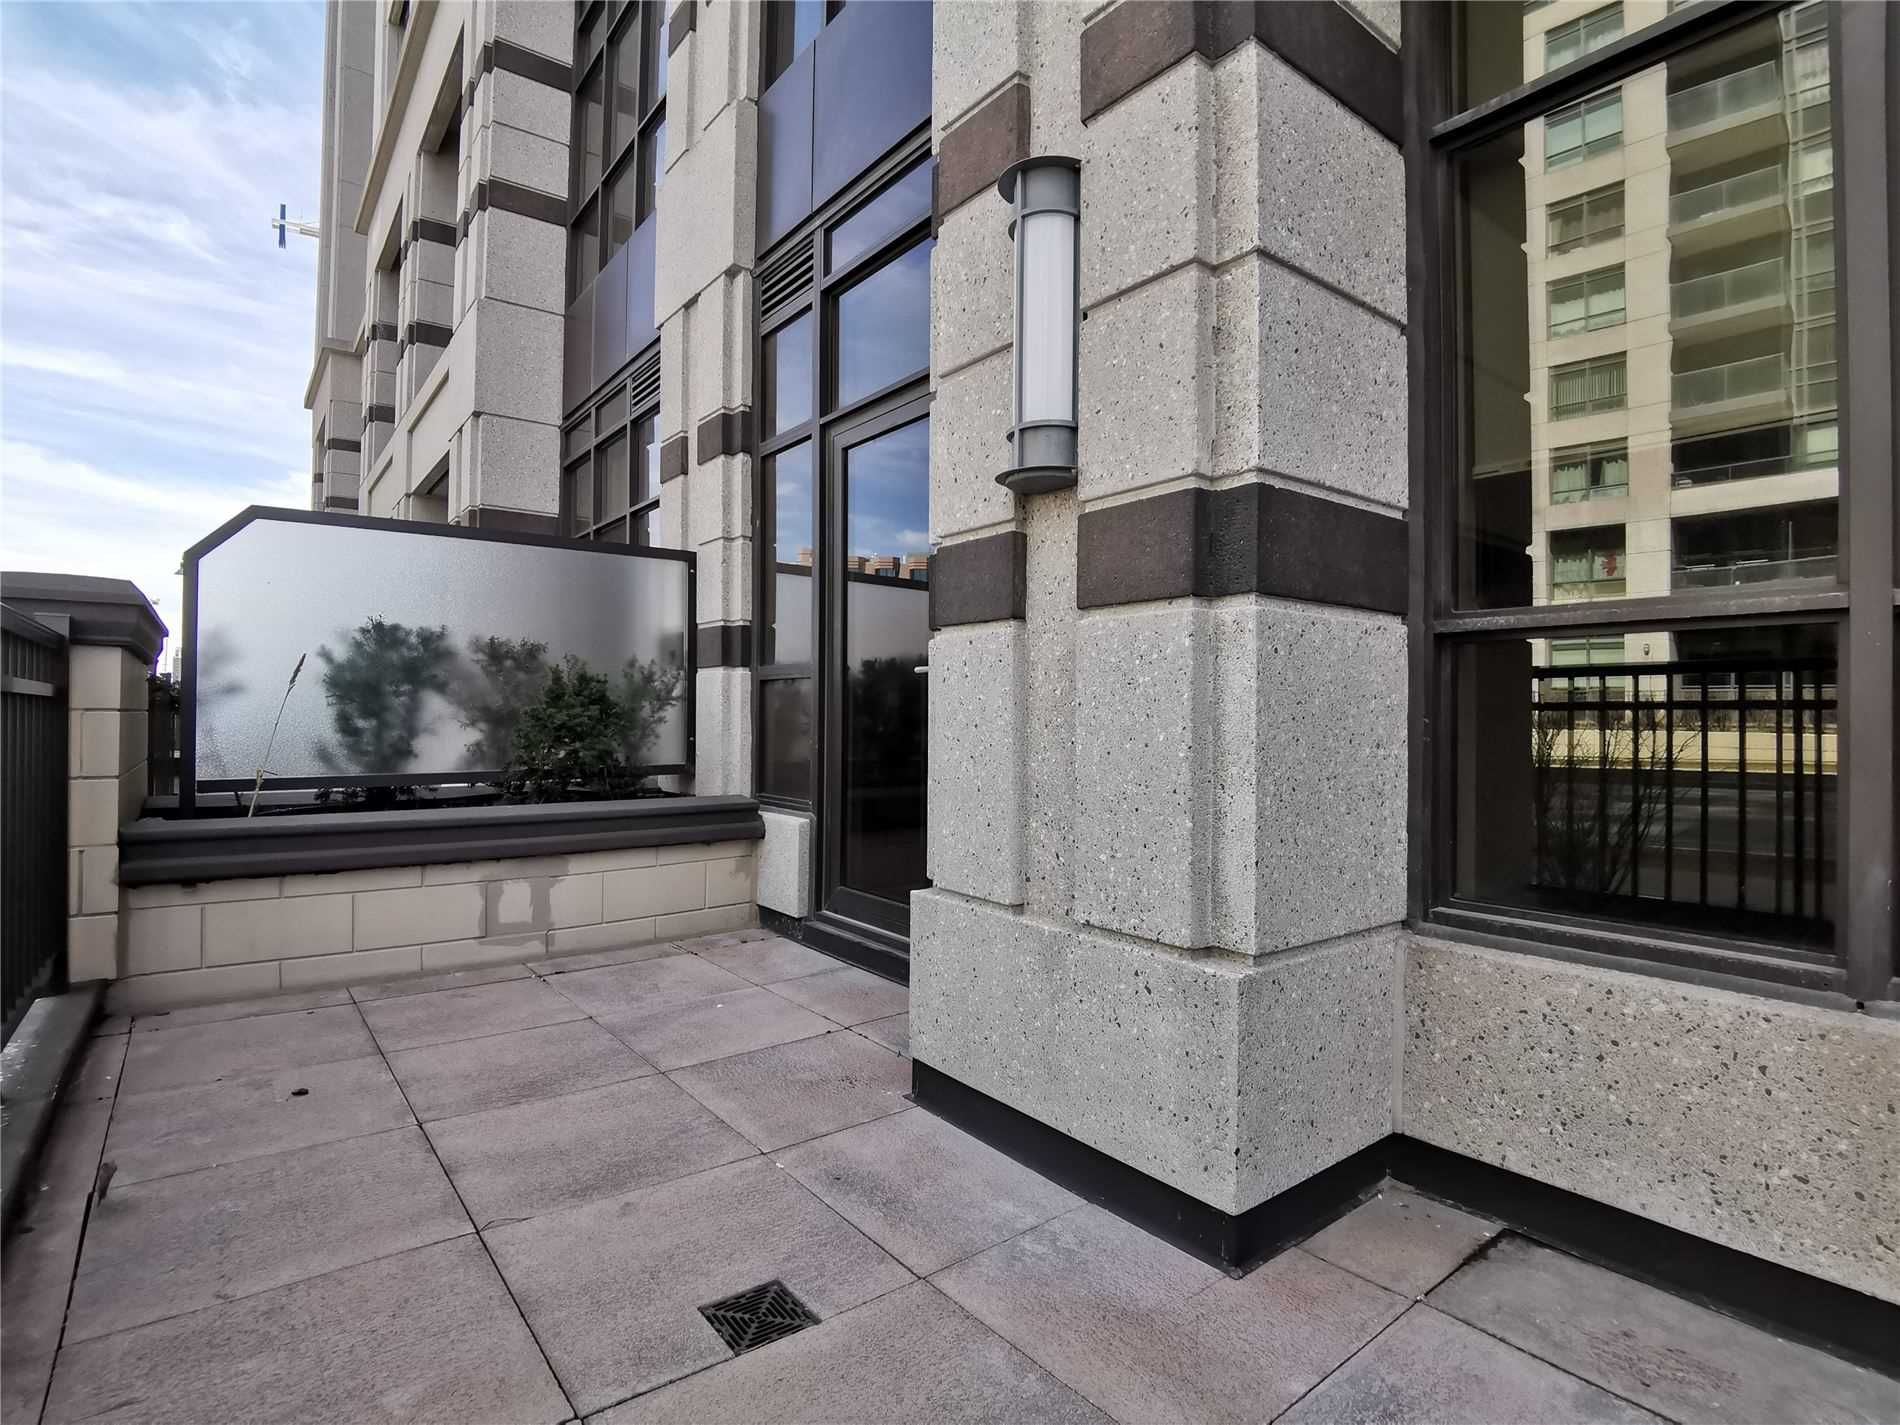 33 Clegg Rd, unit 103D for rent in Toronto - image #2